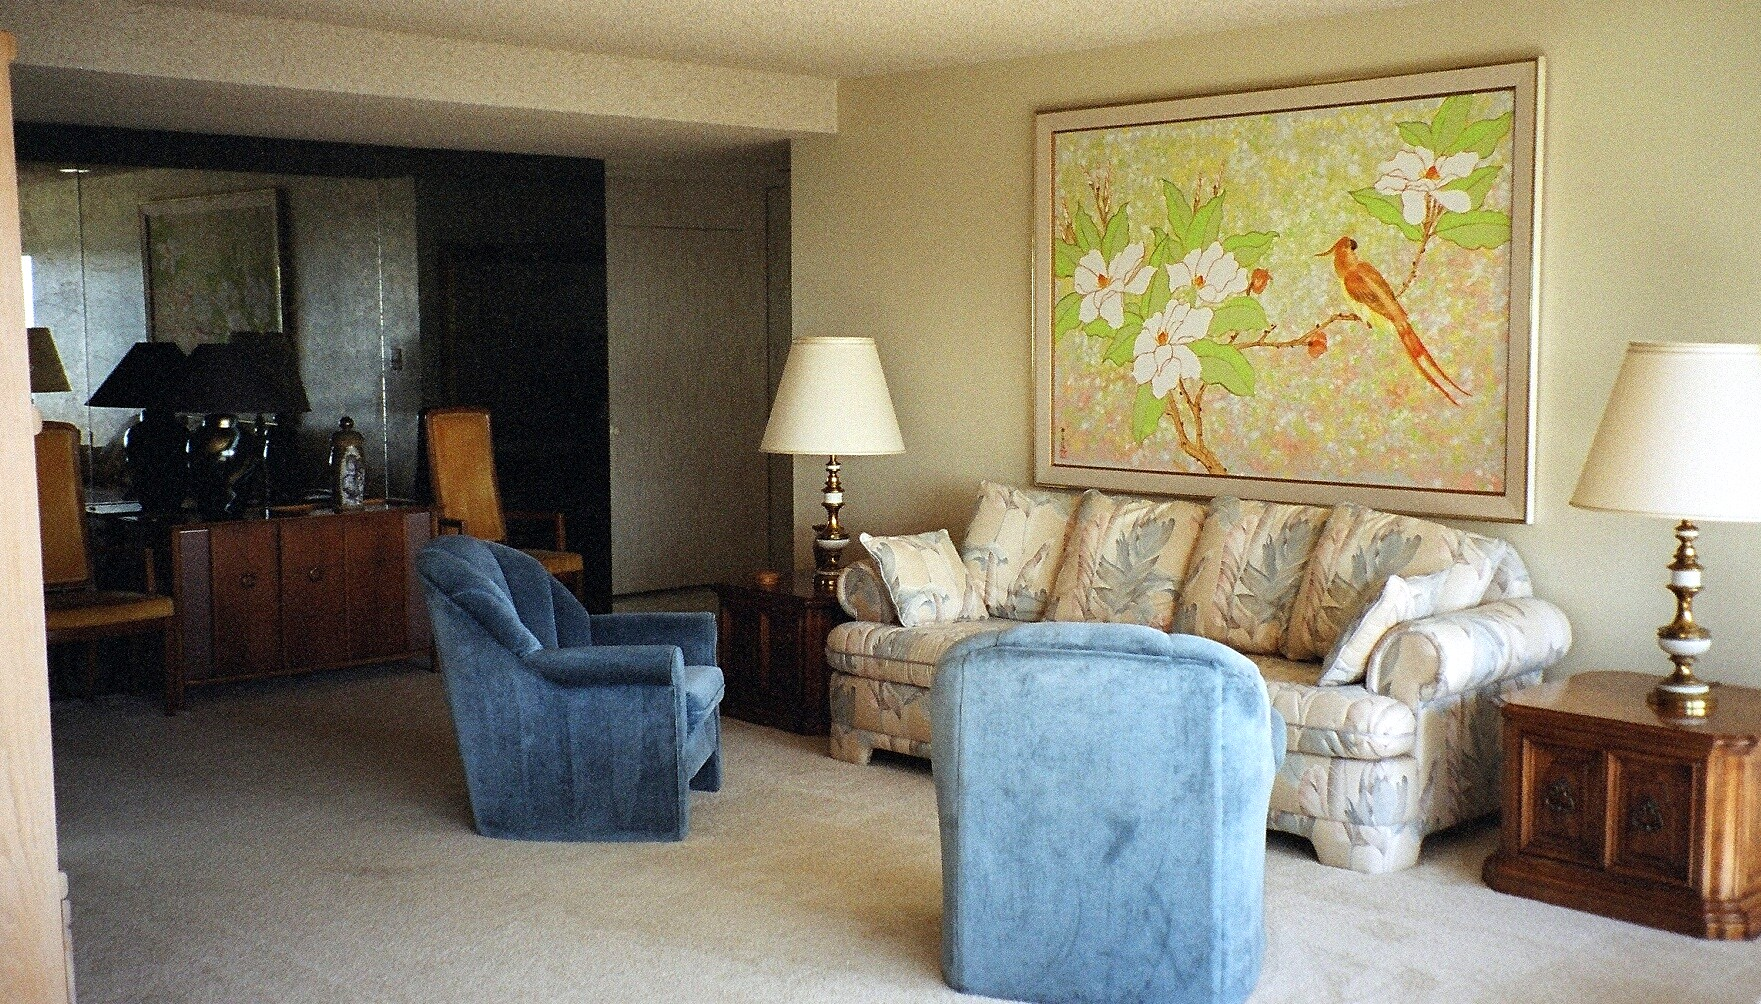 Photo gallery for Living room photo gallery